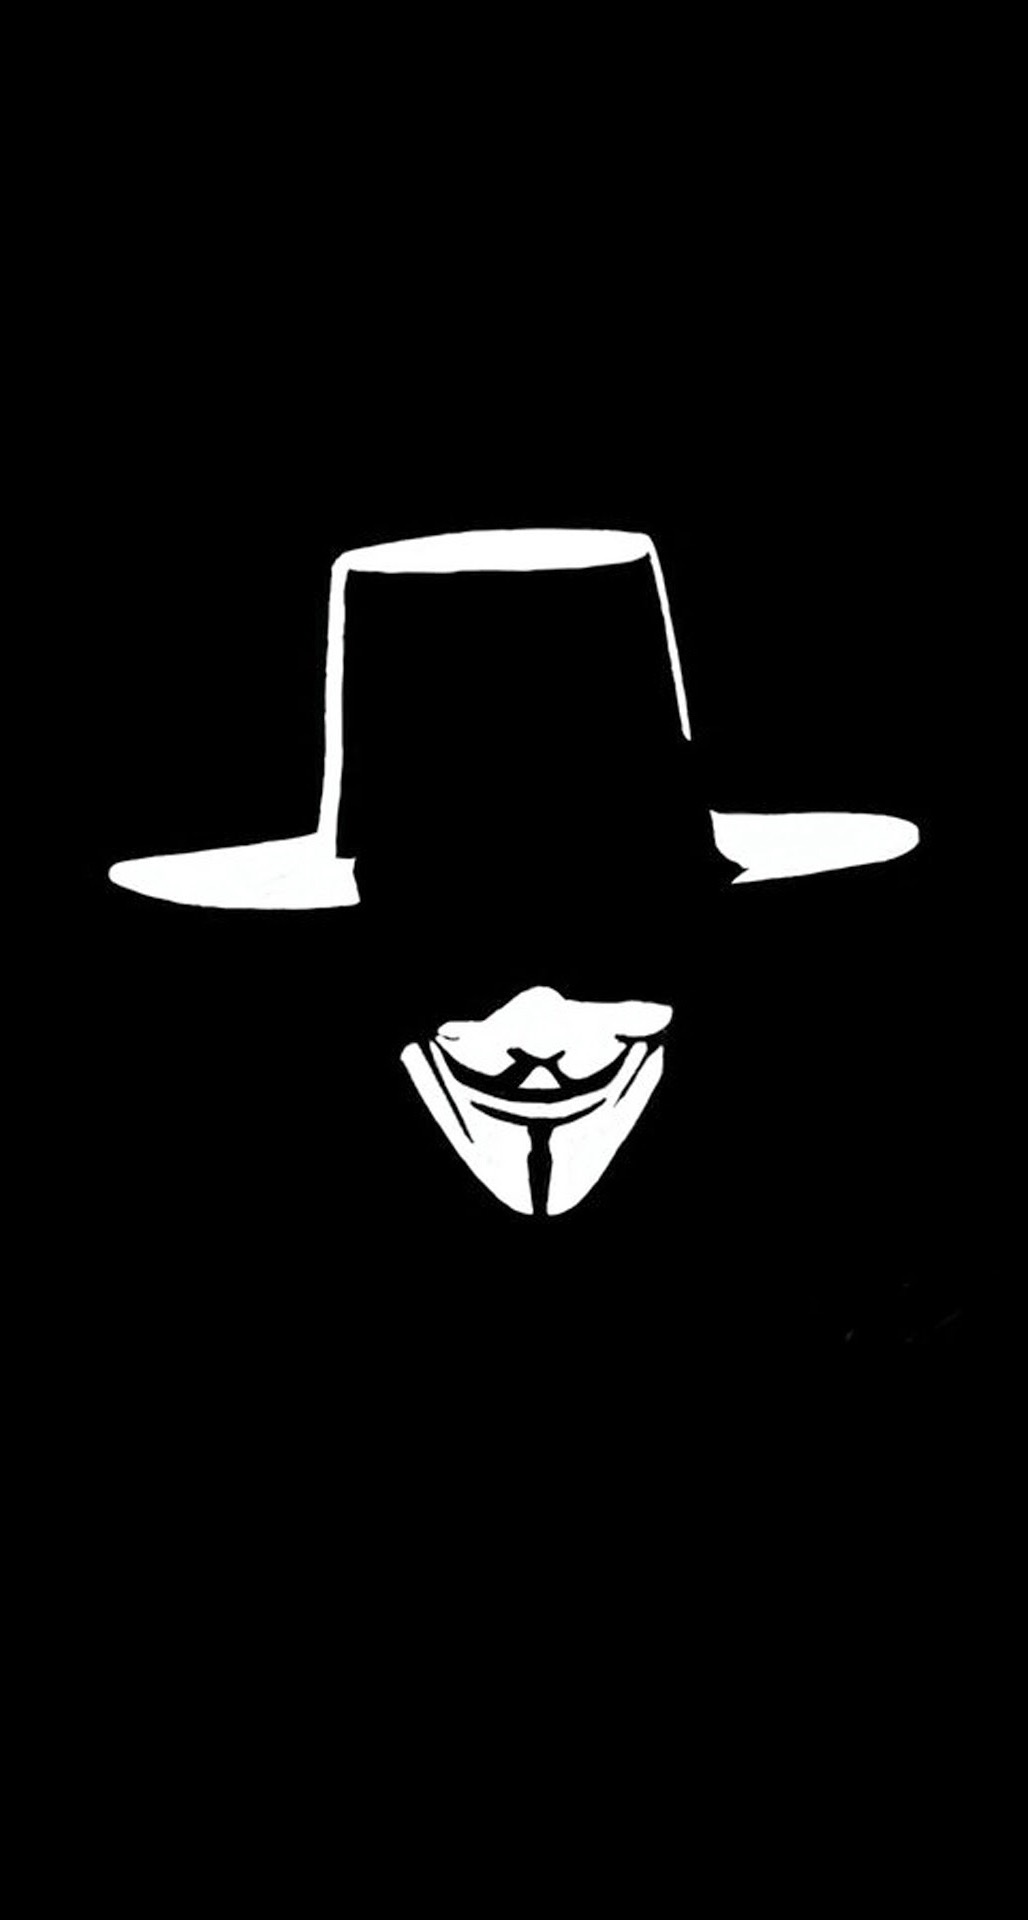 v for vendetta wallpaper hd wallpapersafari